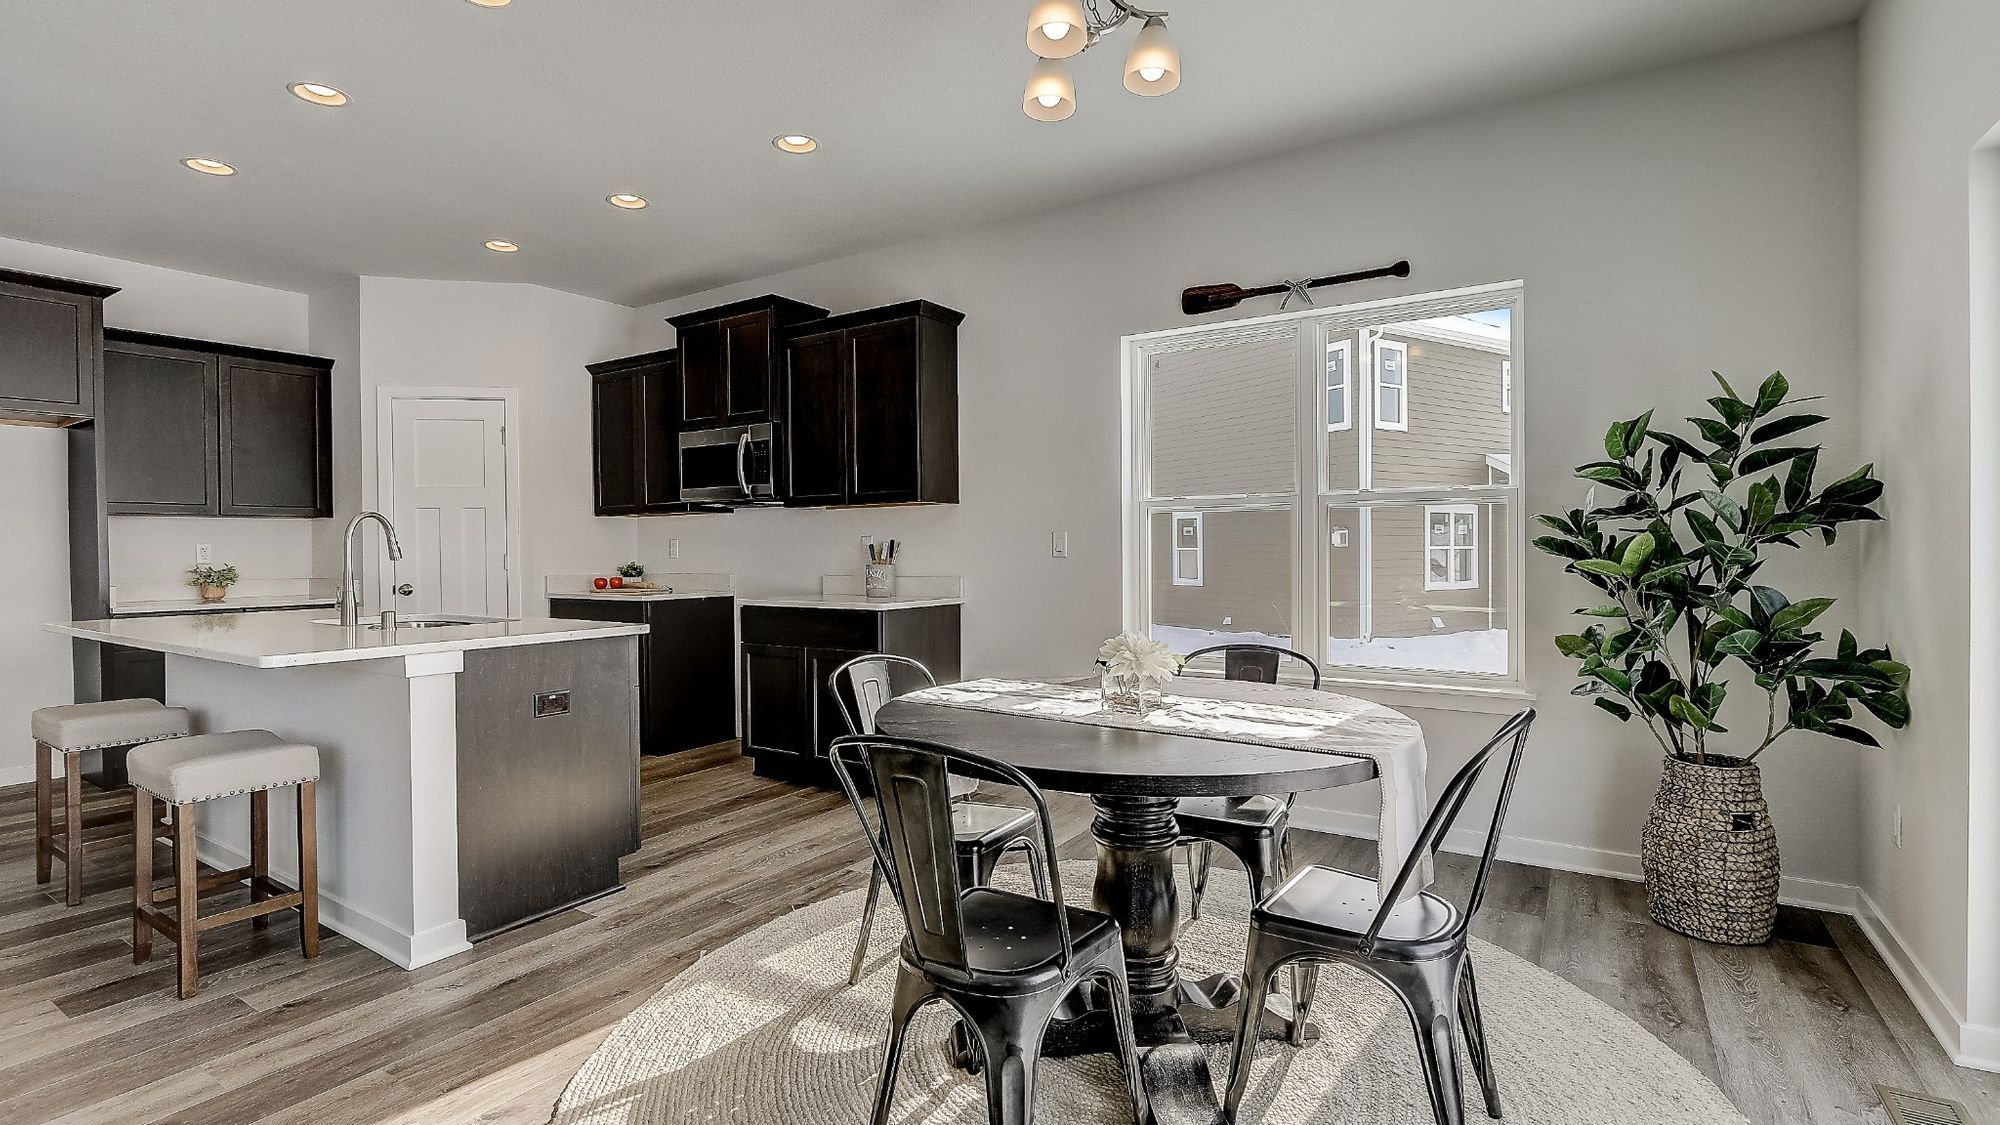 Kitchen featured in The Adrian By Harbor Homes in Washington-Fond du Lac, WI